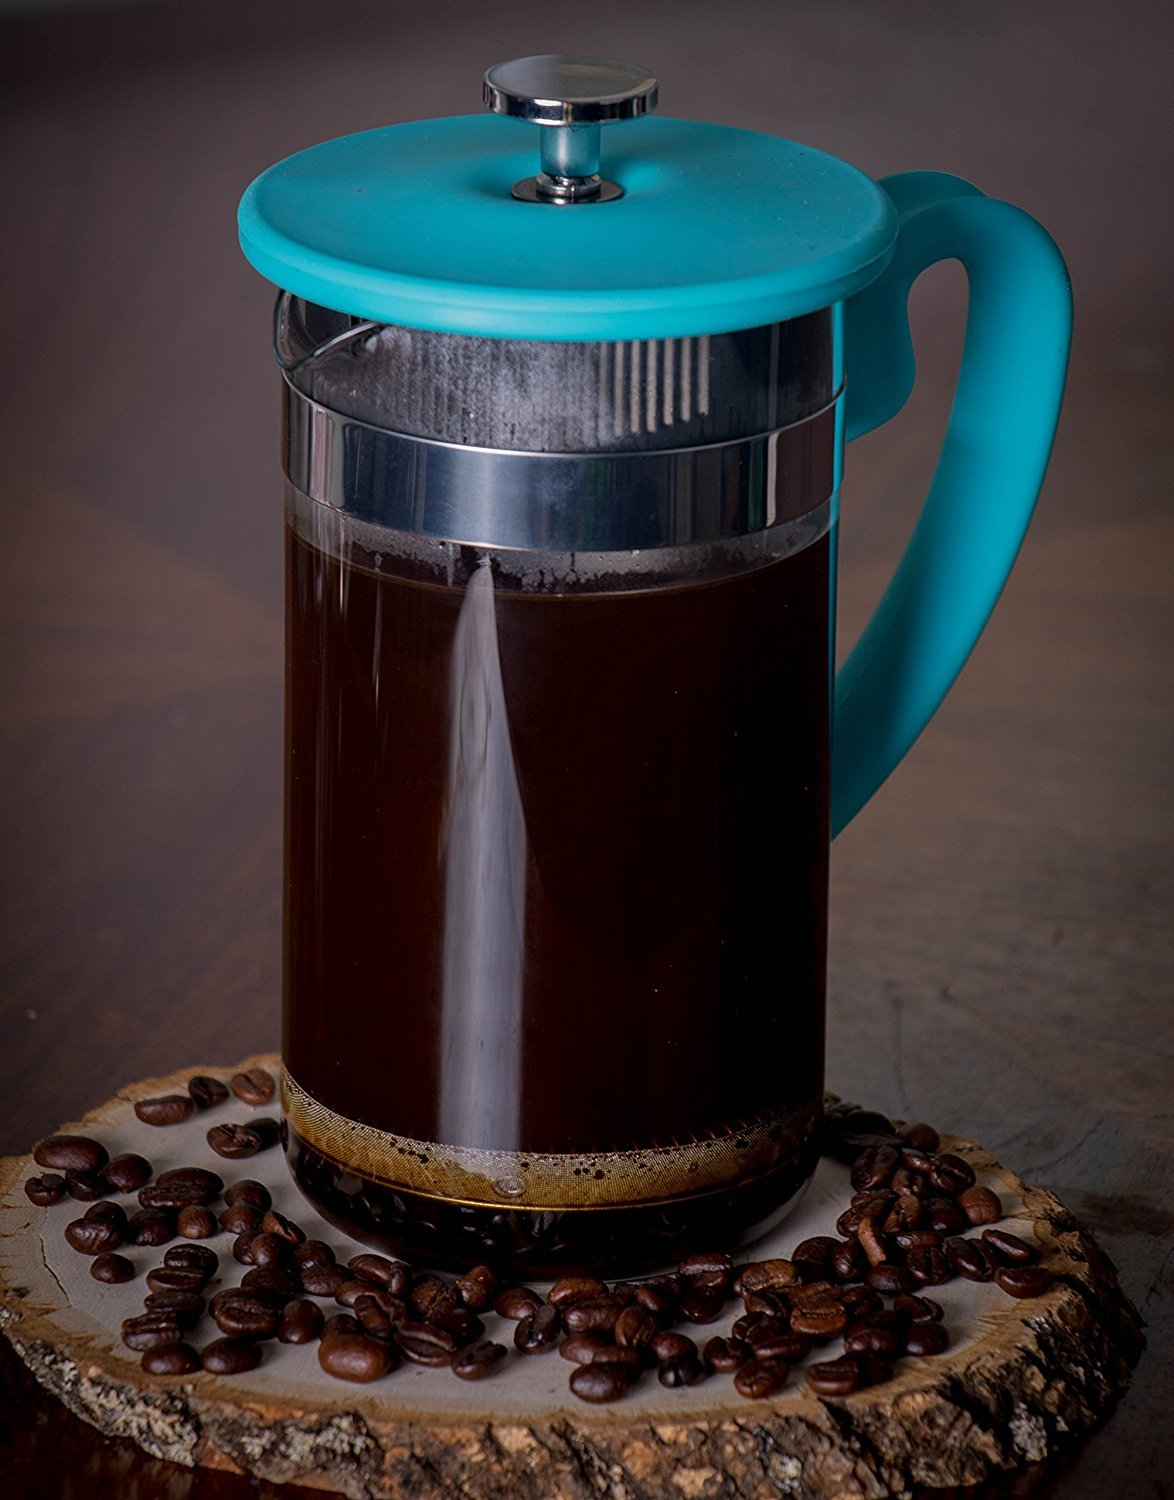 Gourmet 1 Liter Turquoise Glass and Silicone French Press Coffee ...